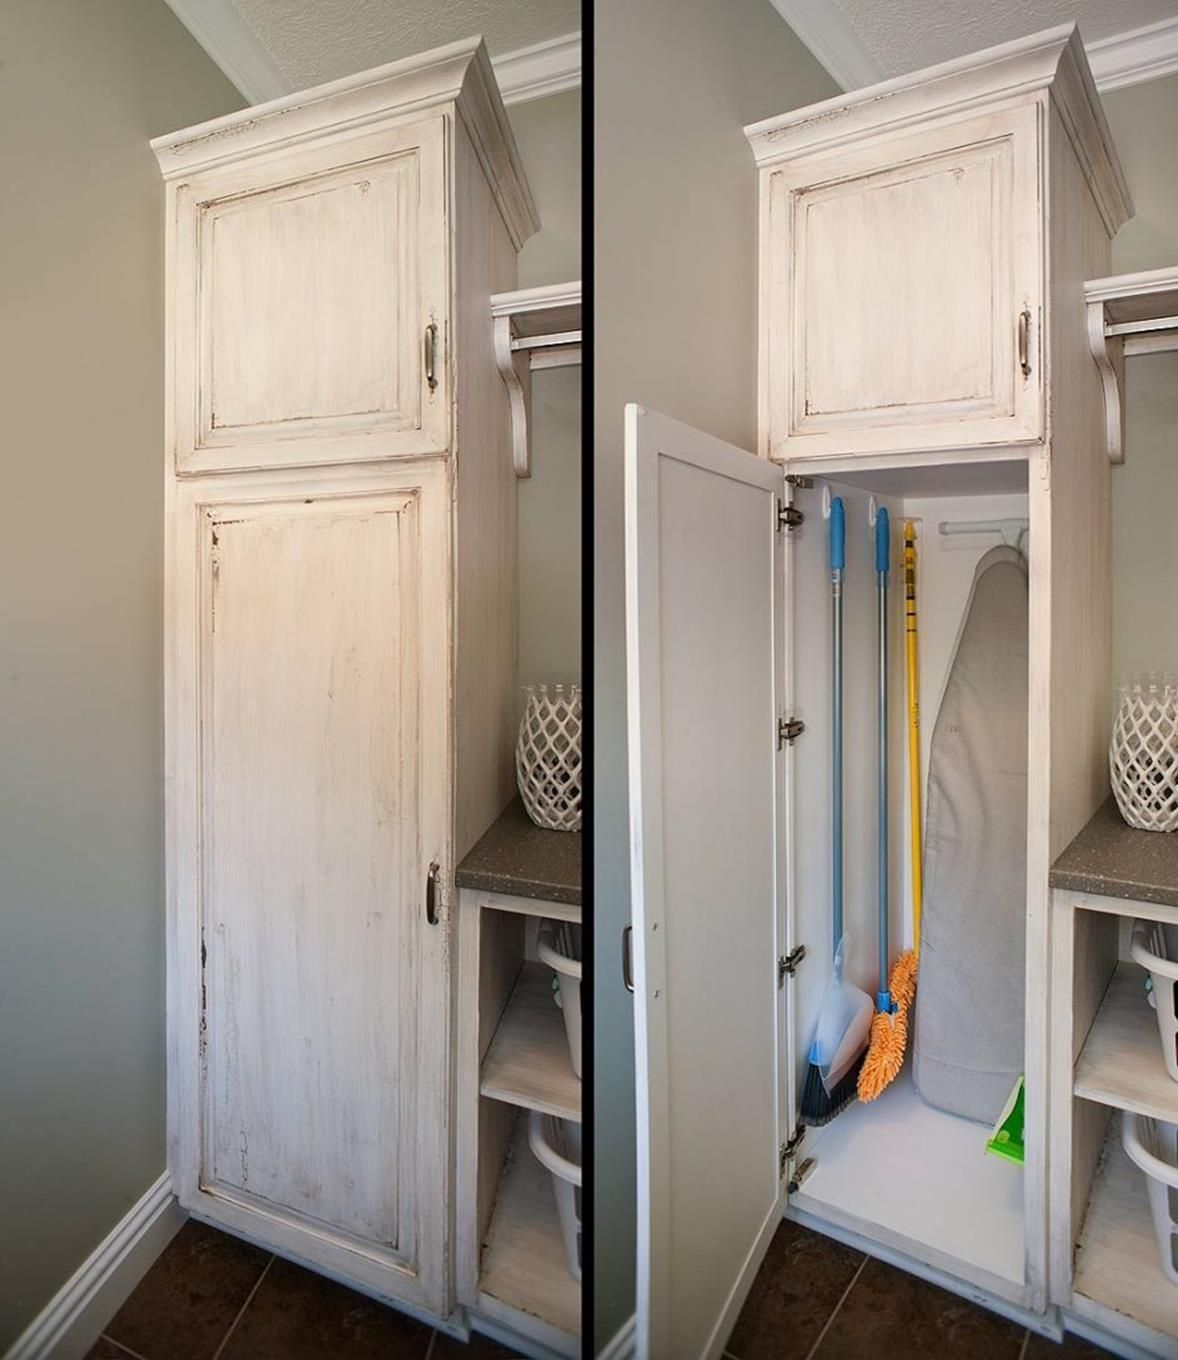 Best Cheap Ikea Cabinets Laundry Room Storage Ideas 5 In 2020